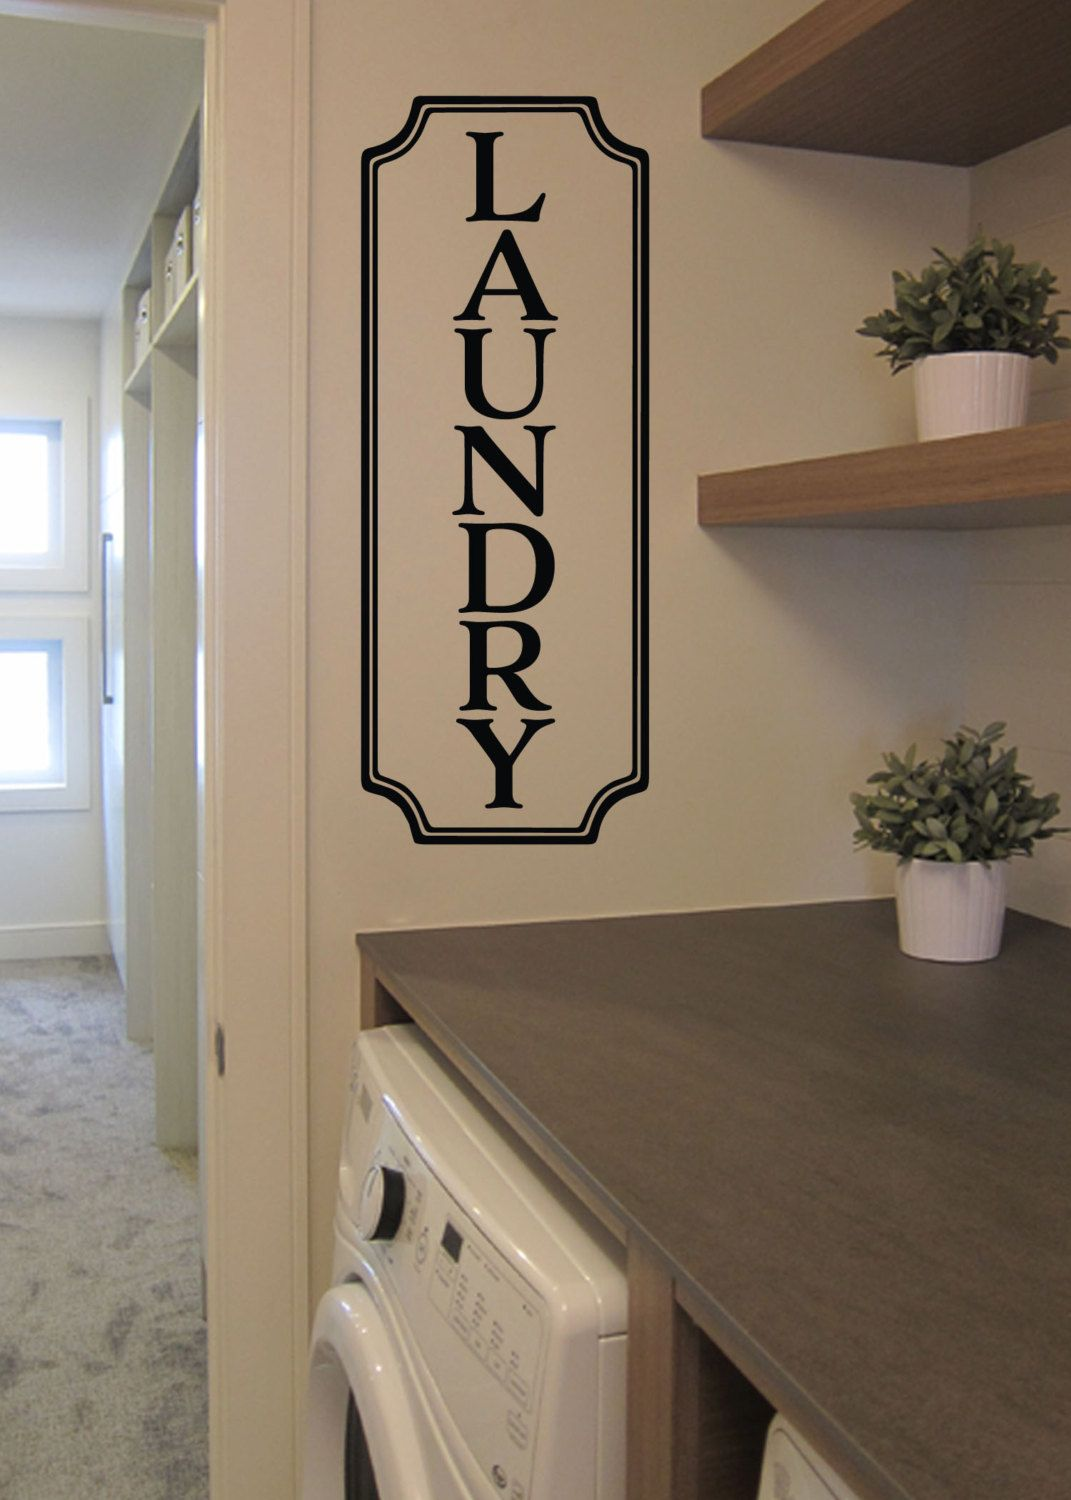 Laundry Vinyl Decal Laundry Room Decal Glass Door Decal Vinyl